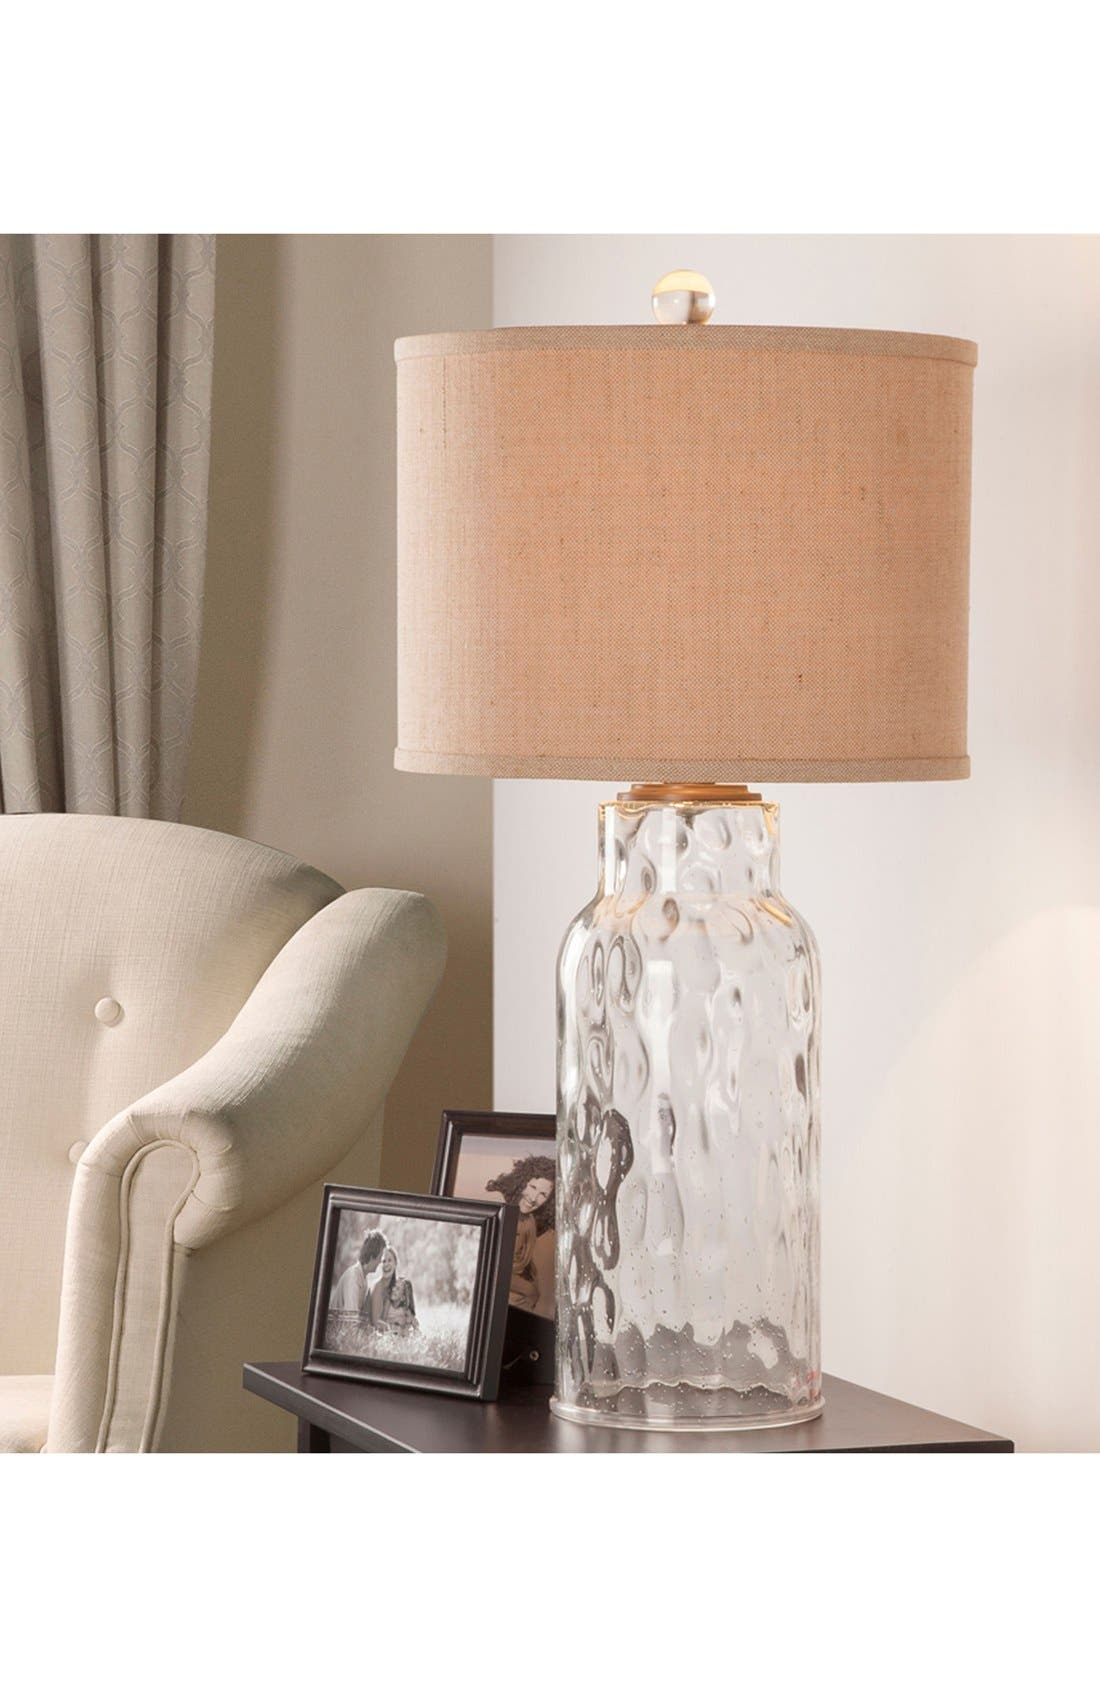 Clear Dimpled Glass Table Lamp,                             Alternate thumbnail 2, color,